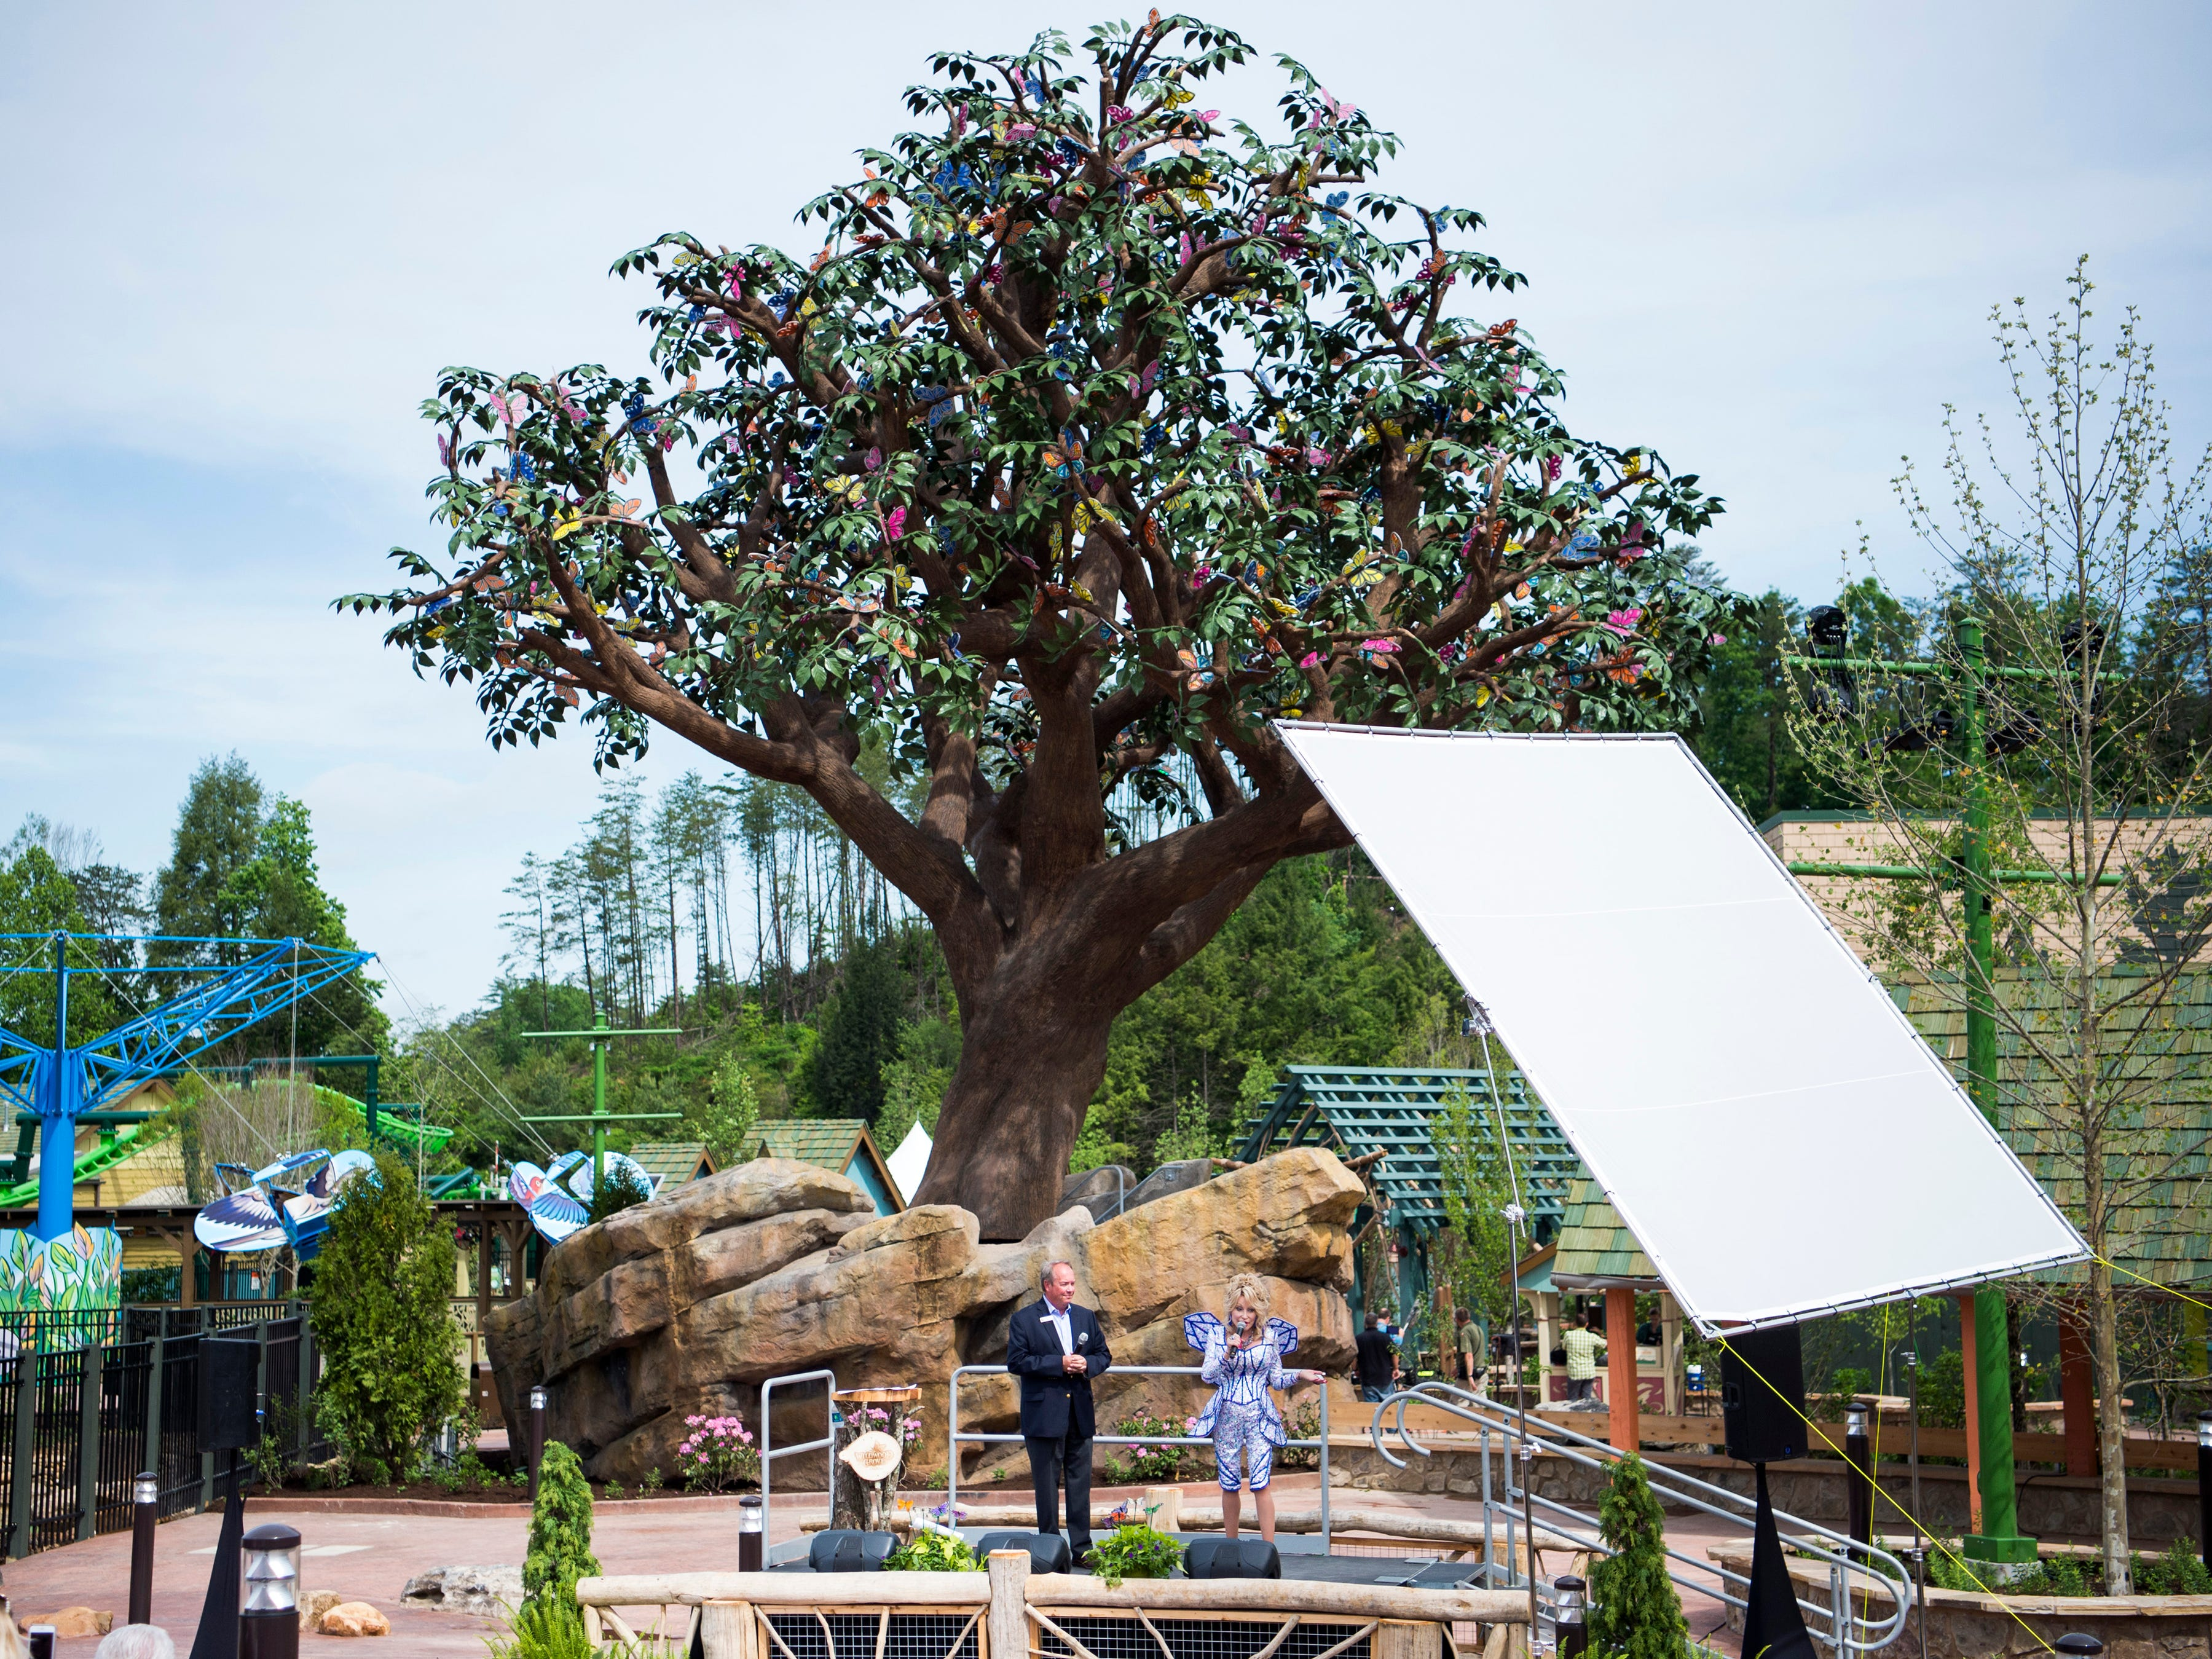 Dolly Parton speaks in front of the Wildwood Tree during the grand opening of Dollywood's new Wildwood Grove expansion on Friday, May 10, 2019.